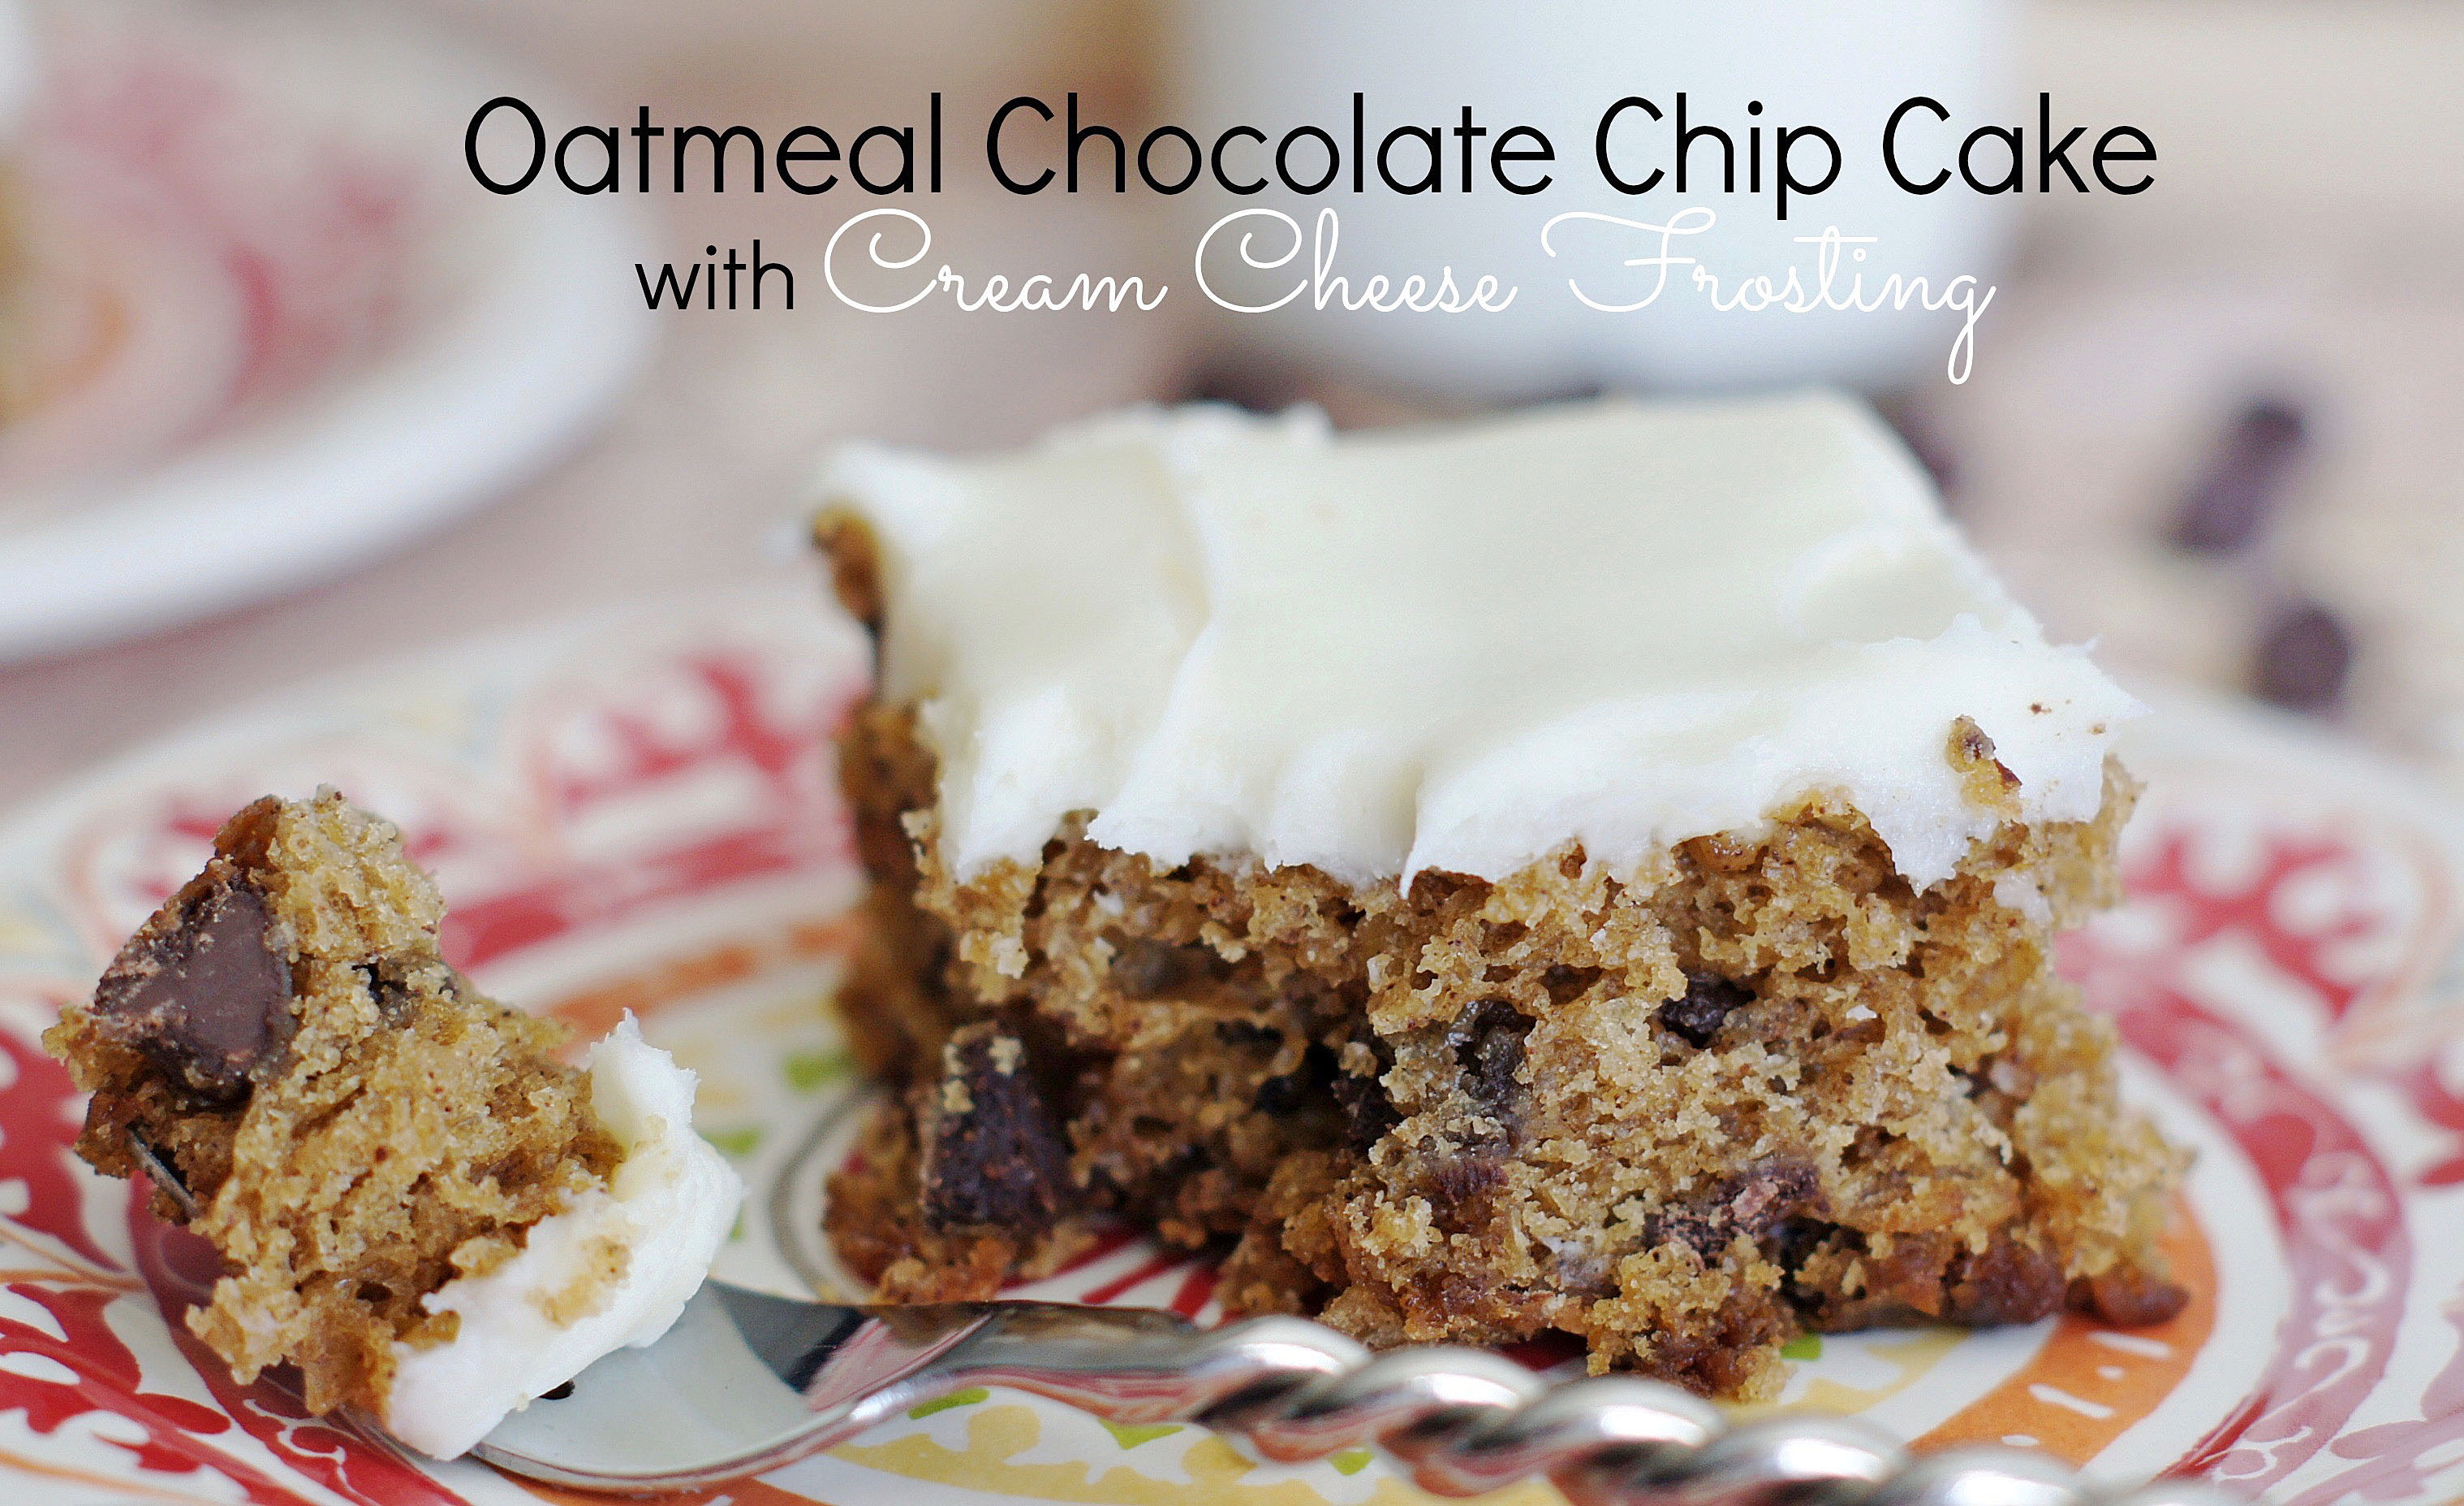 Oatmeal Chocolate Chip Cake with Cream Cheese Frosting - 5BoysBaker